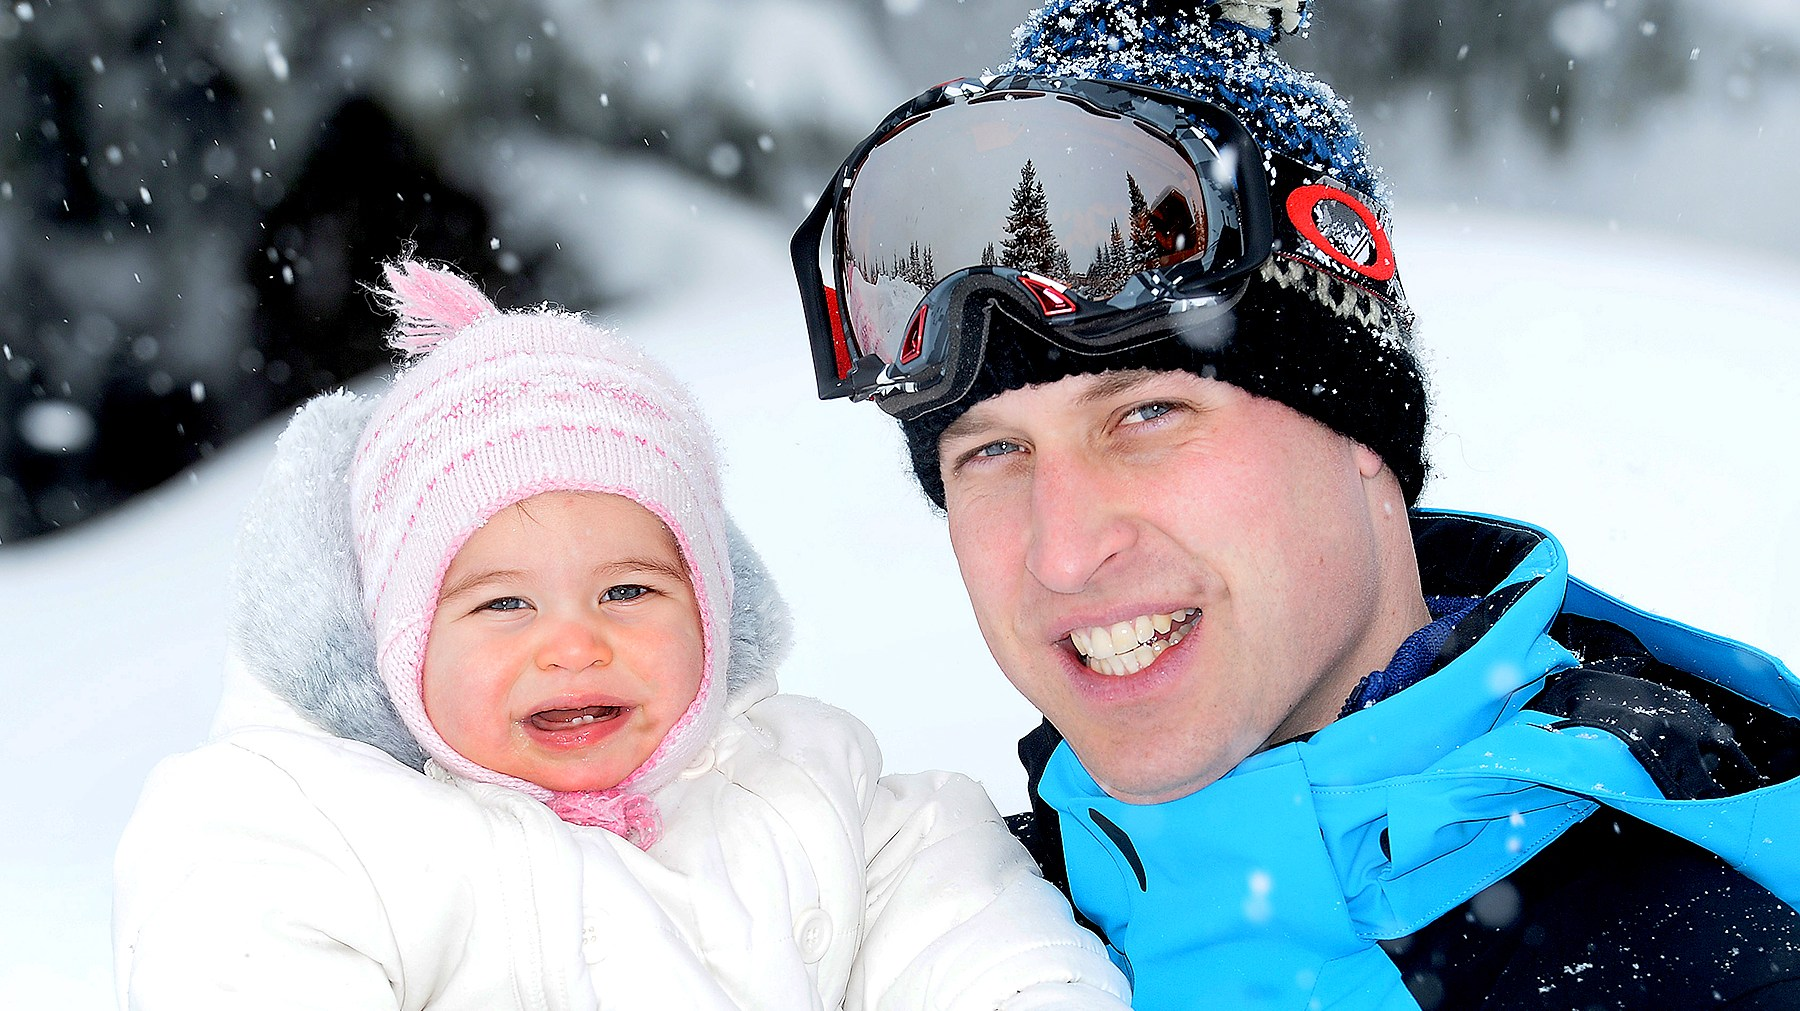 Princess Charlotte and Prince William enjoy a private skiing break on March 3, 2016 in the French Alps.